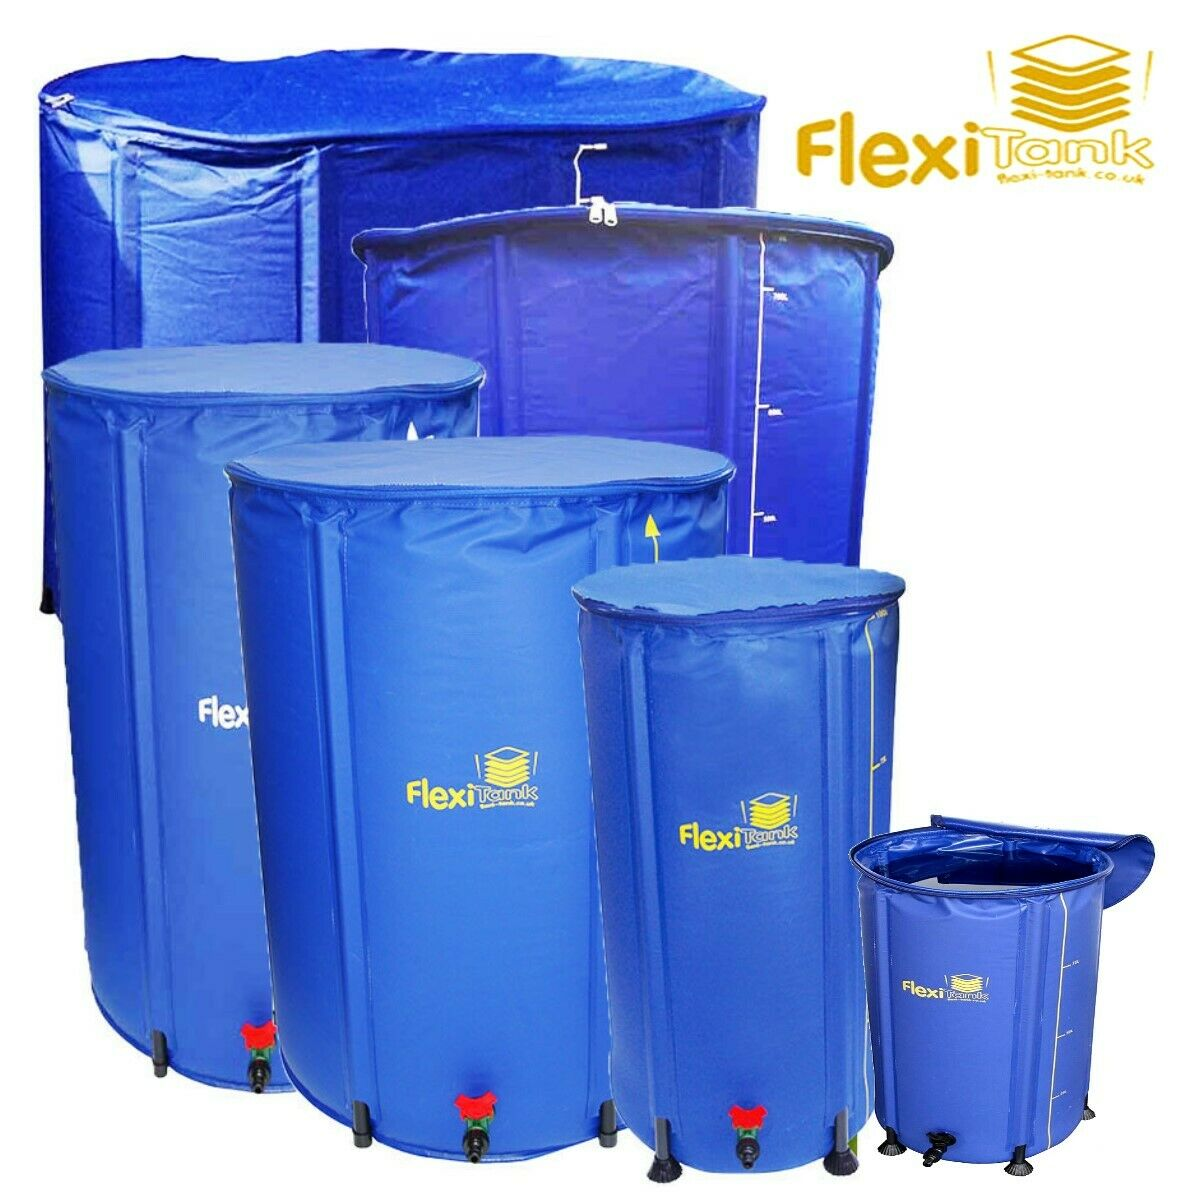 FLEXITANK Portable Water Butt Tank Barrel Storage Collapsible Fold up Compact